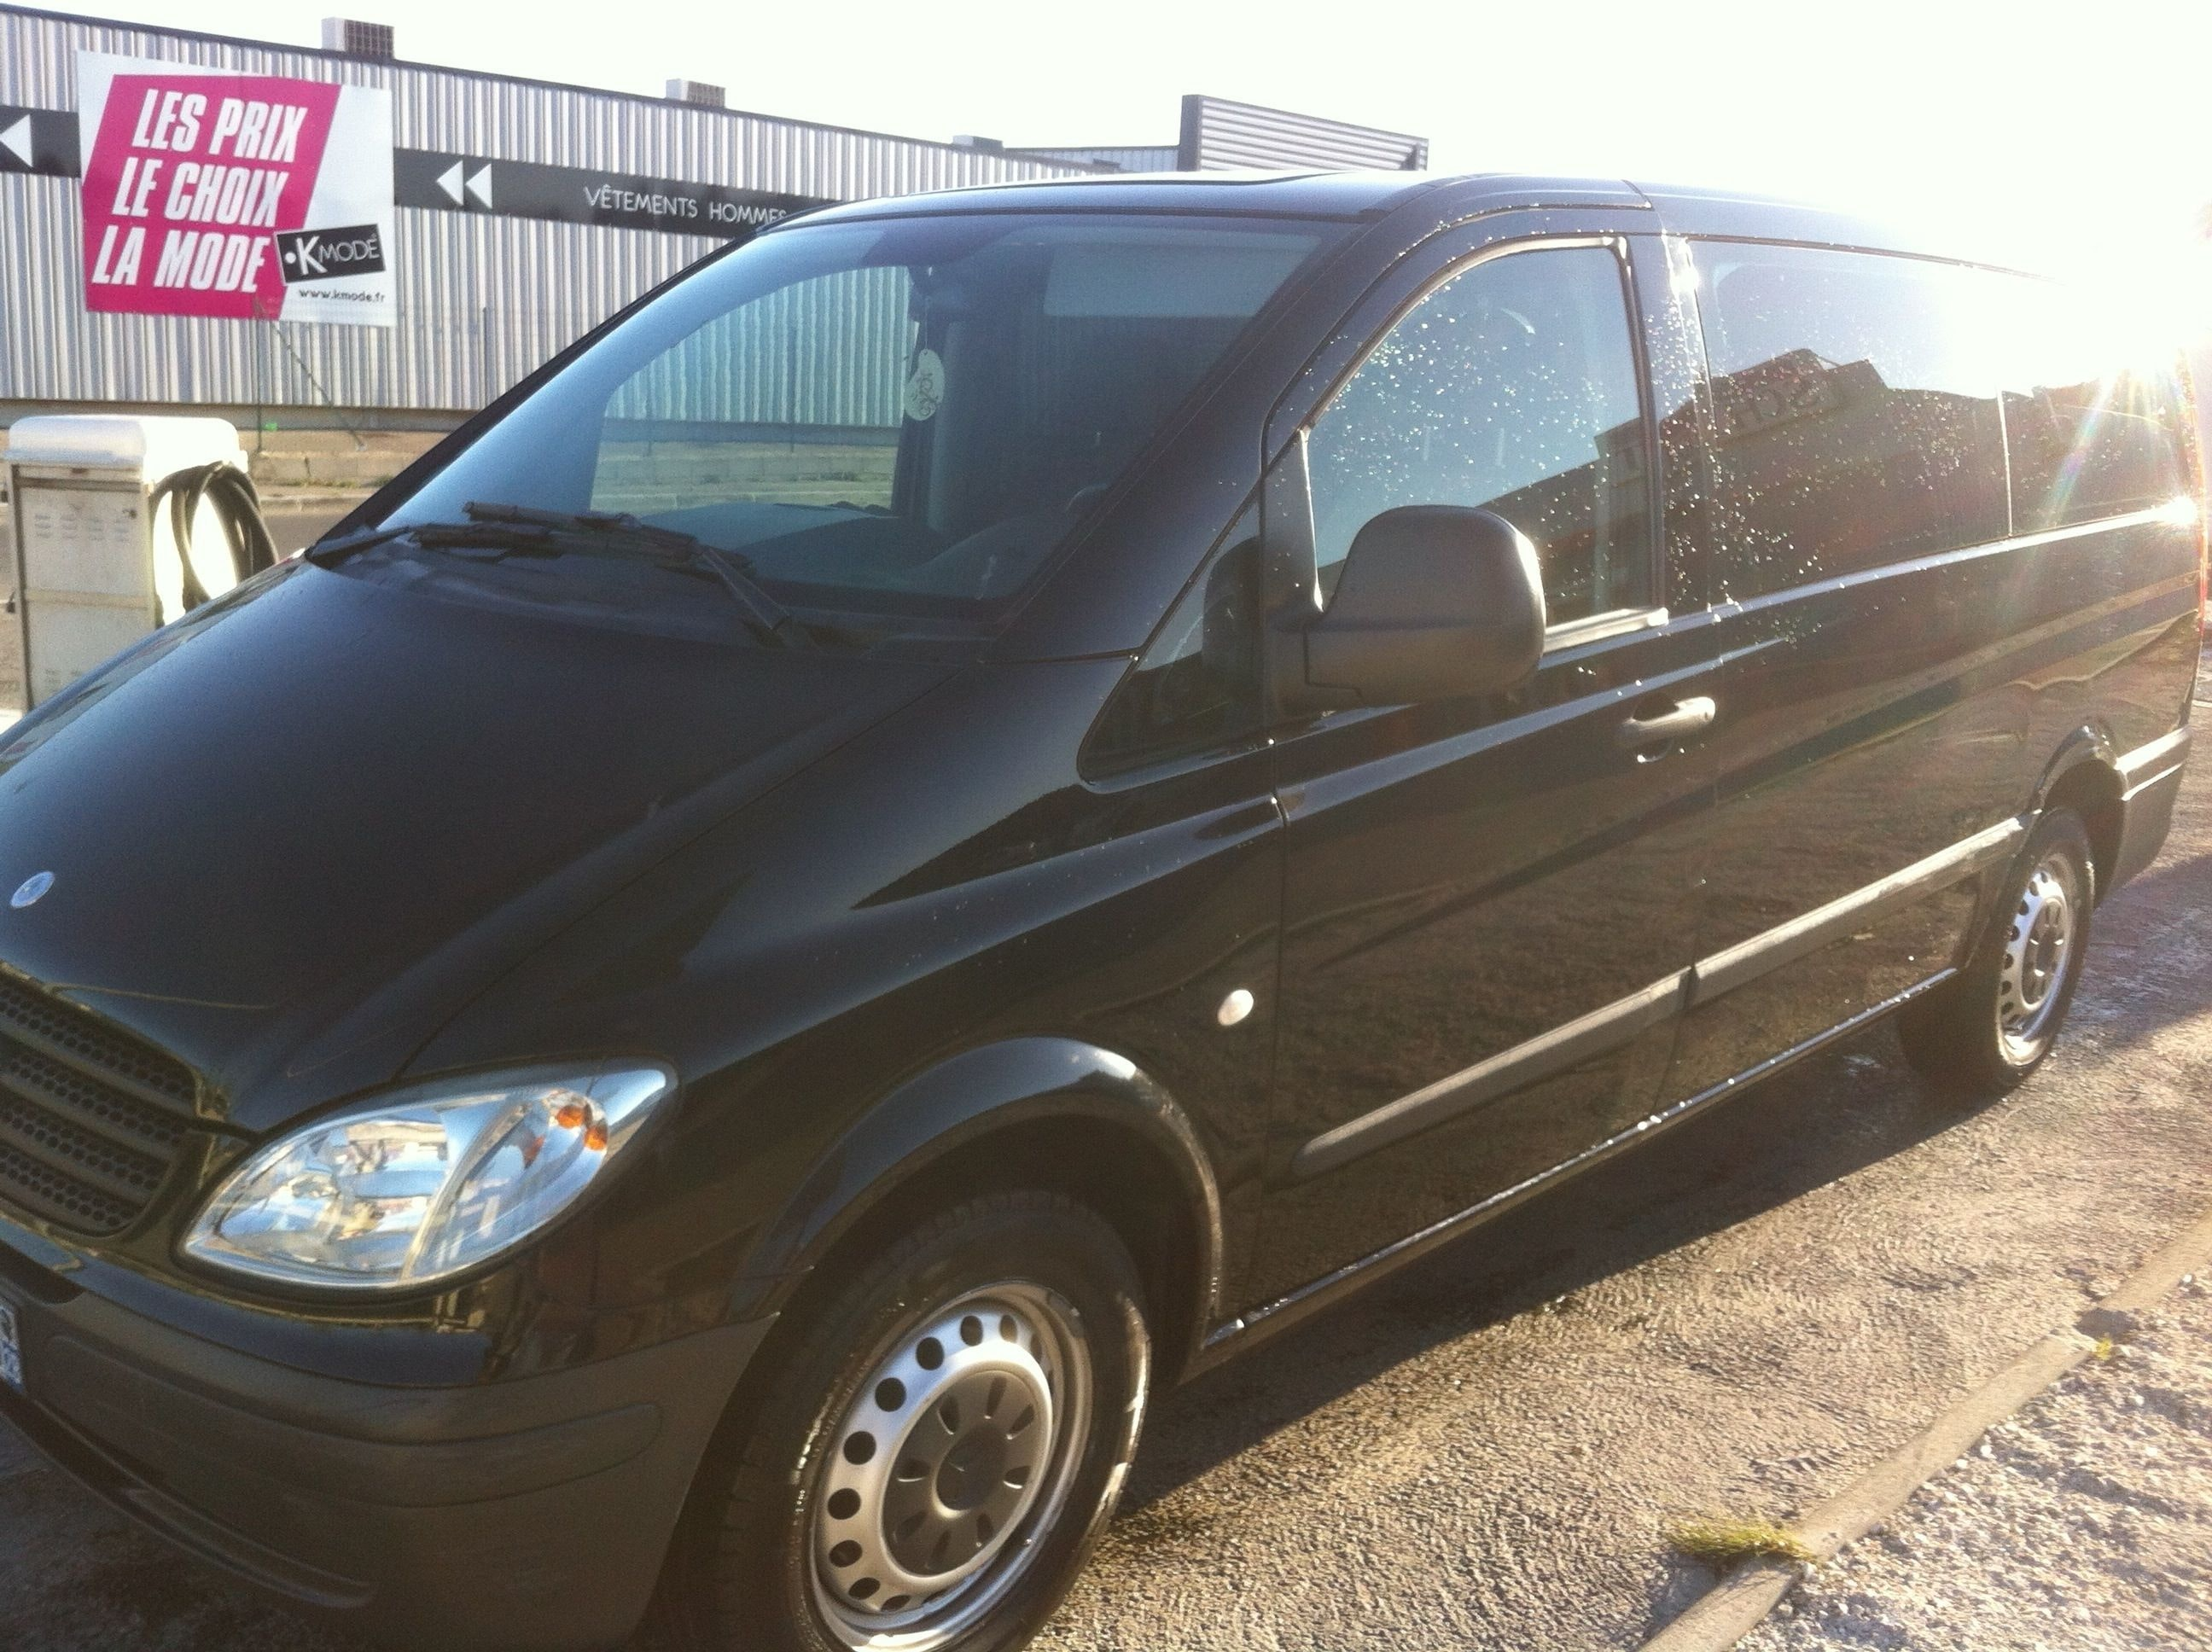 Mercedes Vito 111 CDI, 2006, Diesel, 7 places